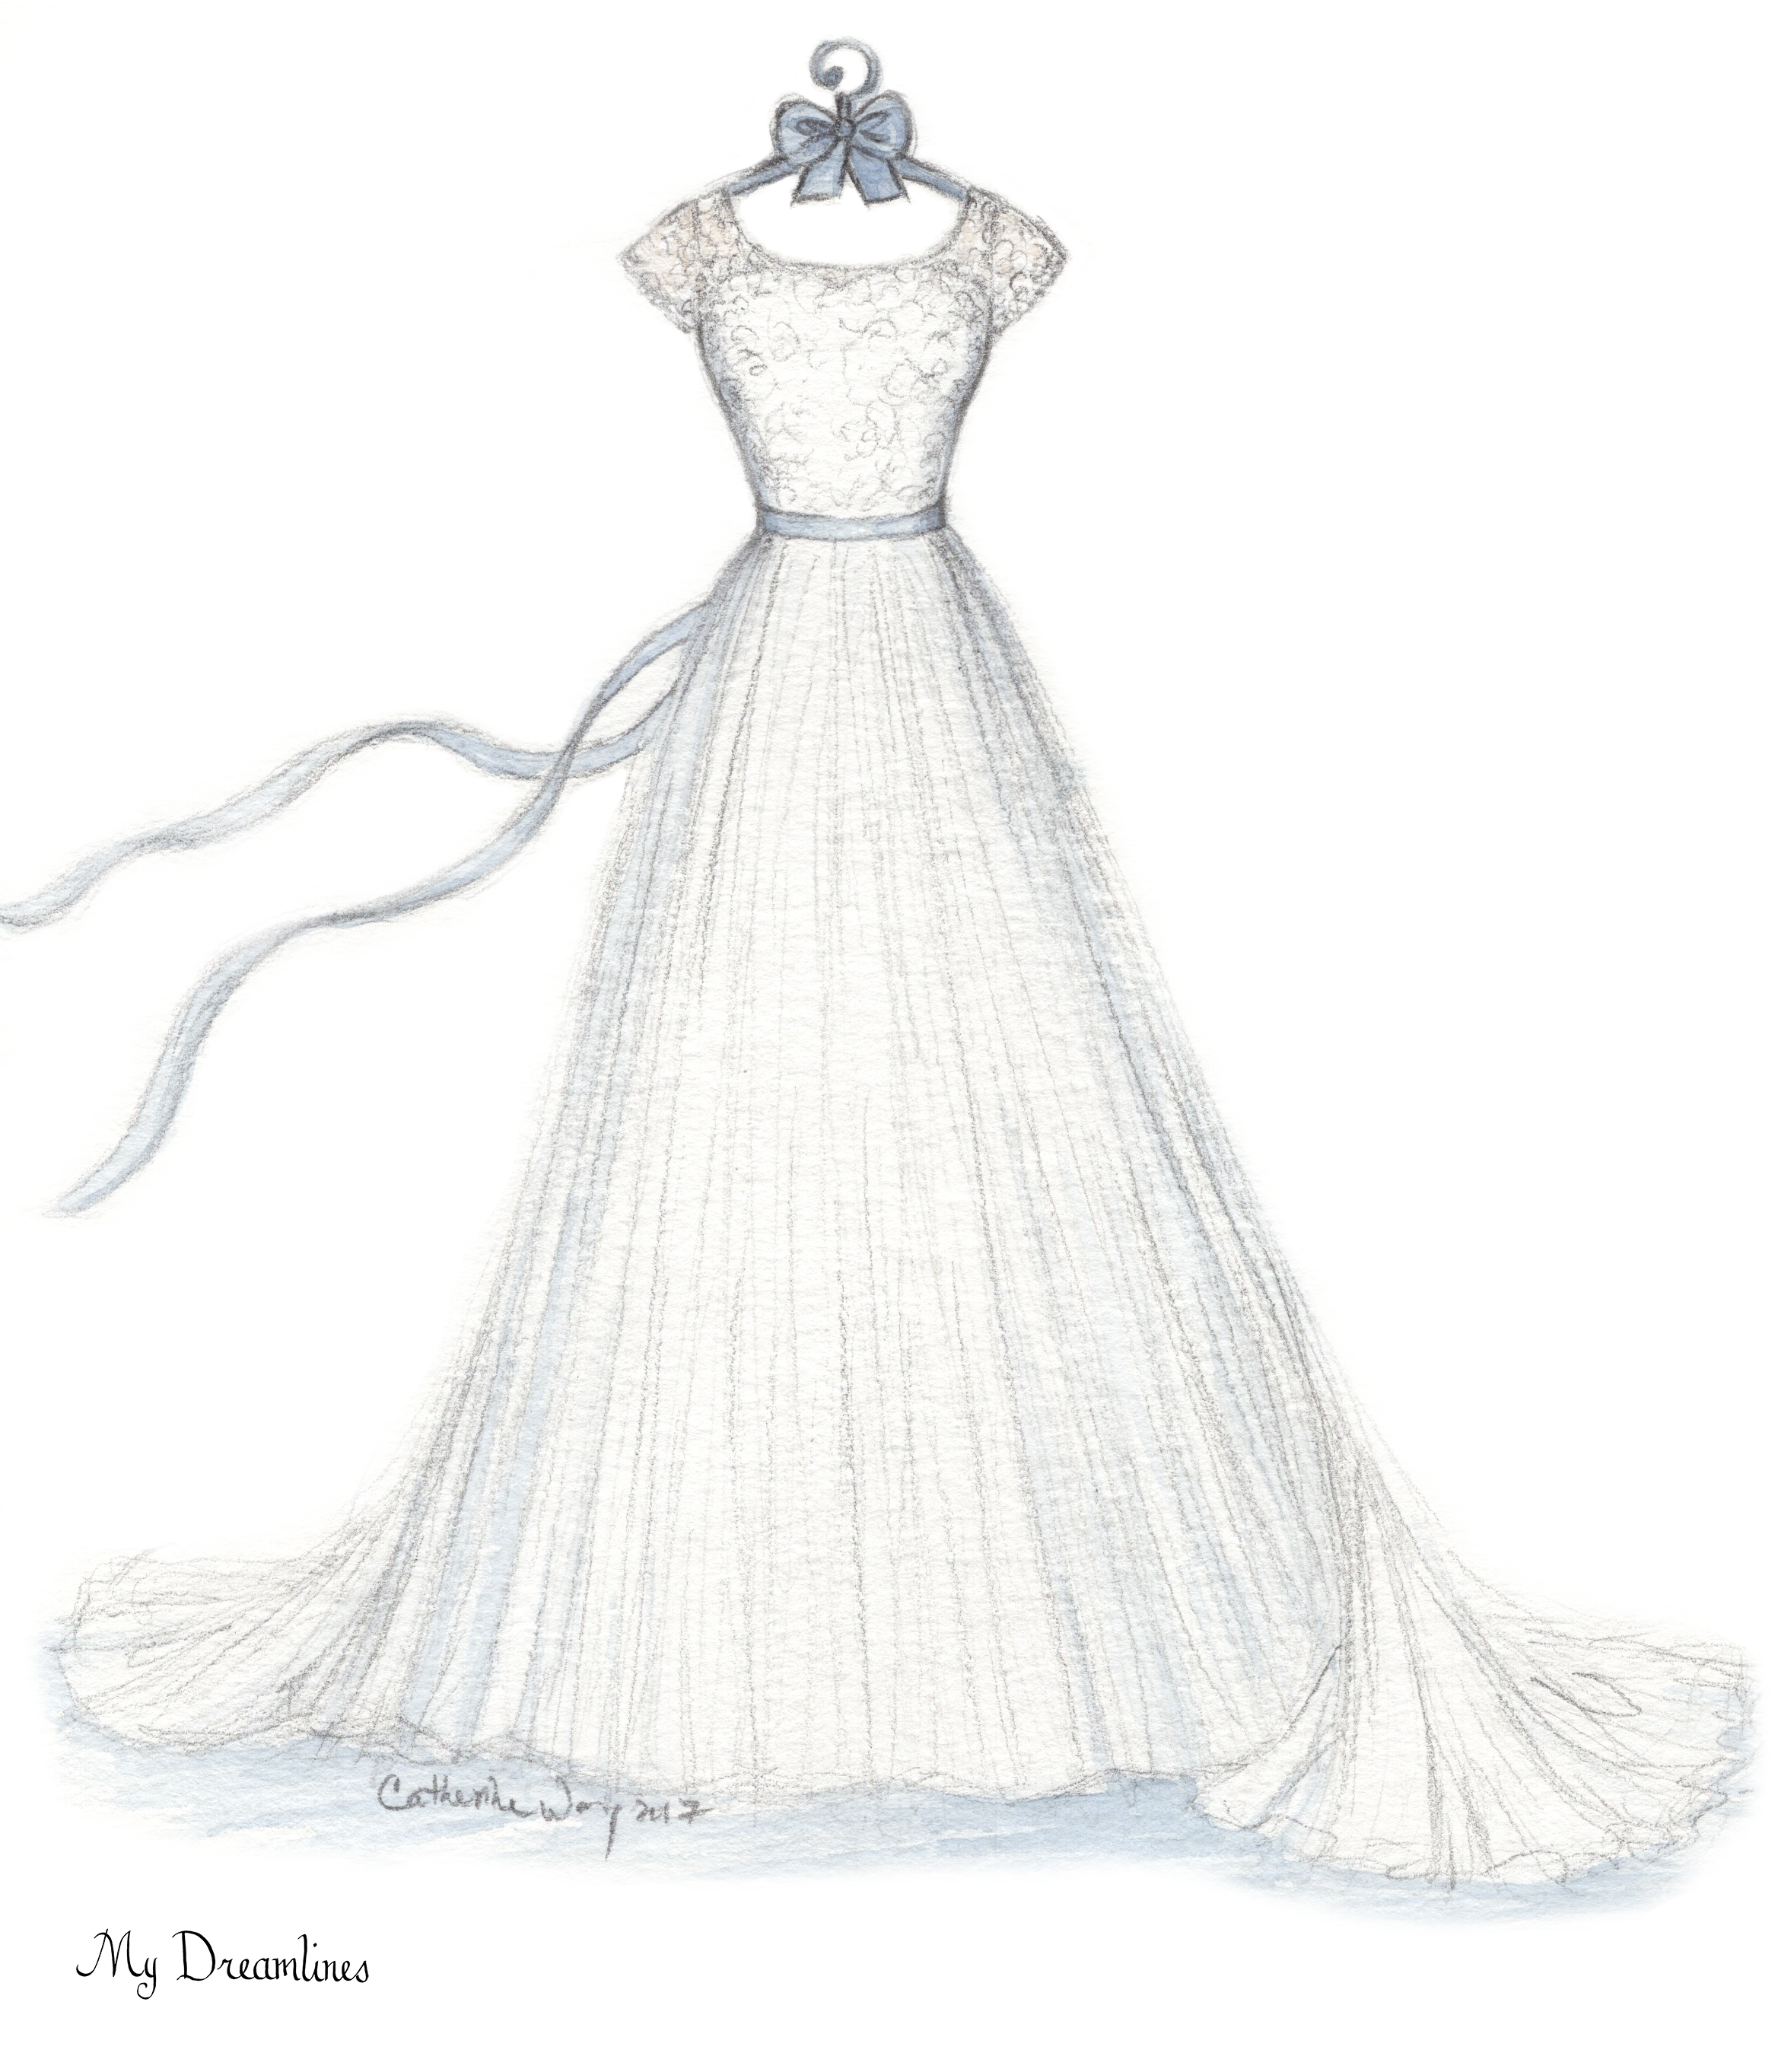 What is the best gift for her? Her wedding dress sketched and your ...